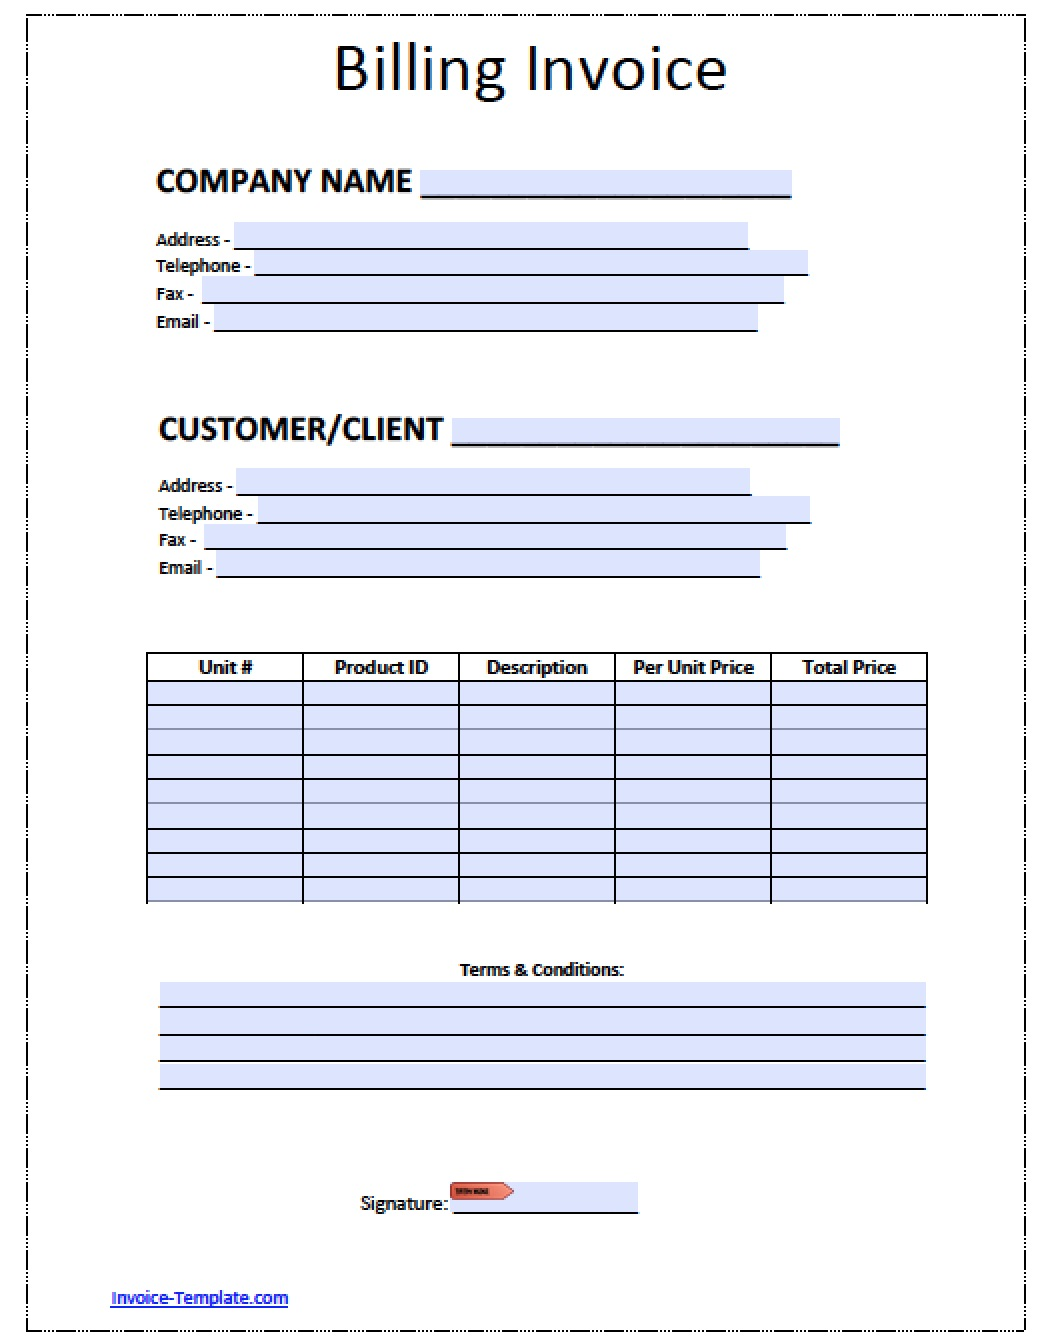 Bill Template | Free Billing Invoice Template Excel Pdf Word Doc